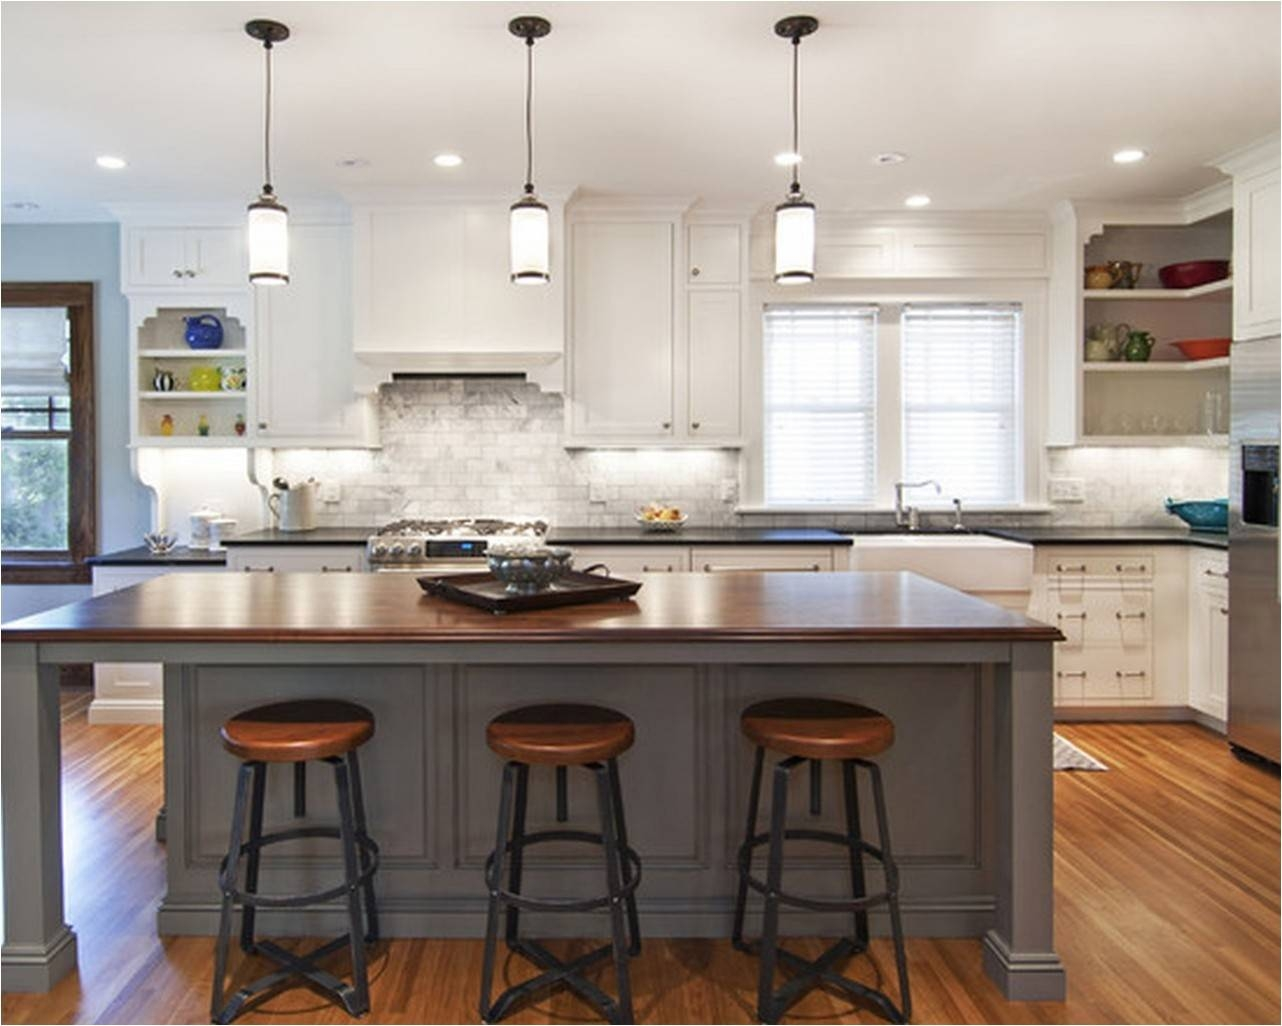 Glass Pendant Lights For Kitchen Island Rustic Kitchen Island In within Mini Pendant Lights Over Kitchen Island (Image 7 of 15)